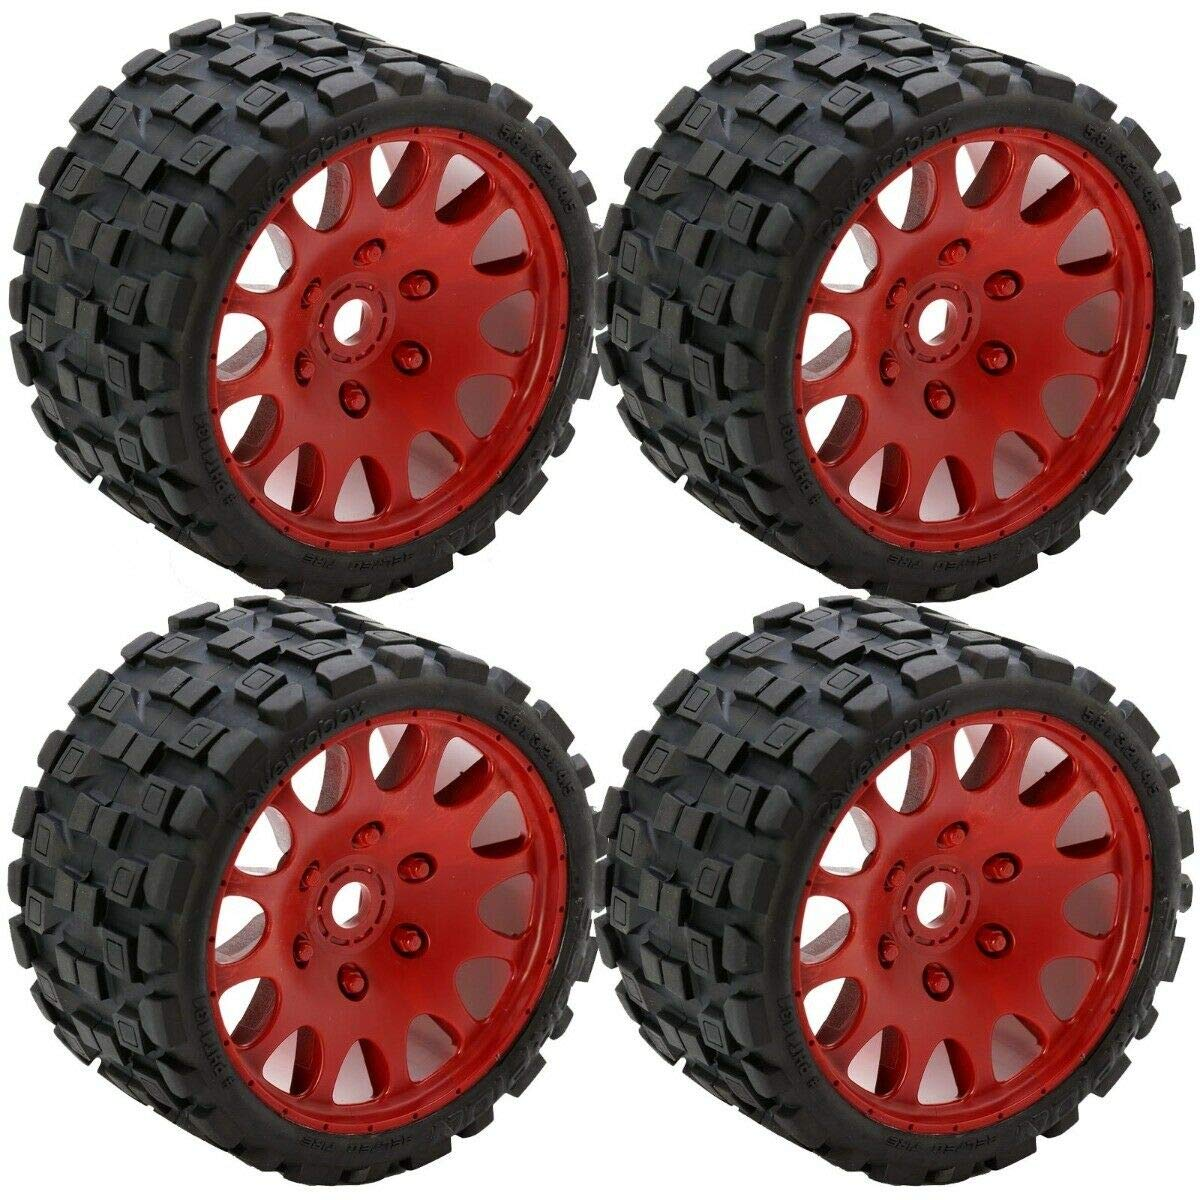 PH PPIowerHobby Scorpion Belted Monster w Tires Wheels Don't miss the campaign Truck 17m Manufacturer direct delivery